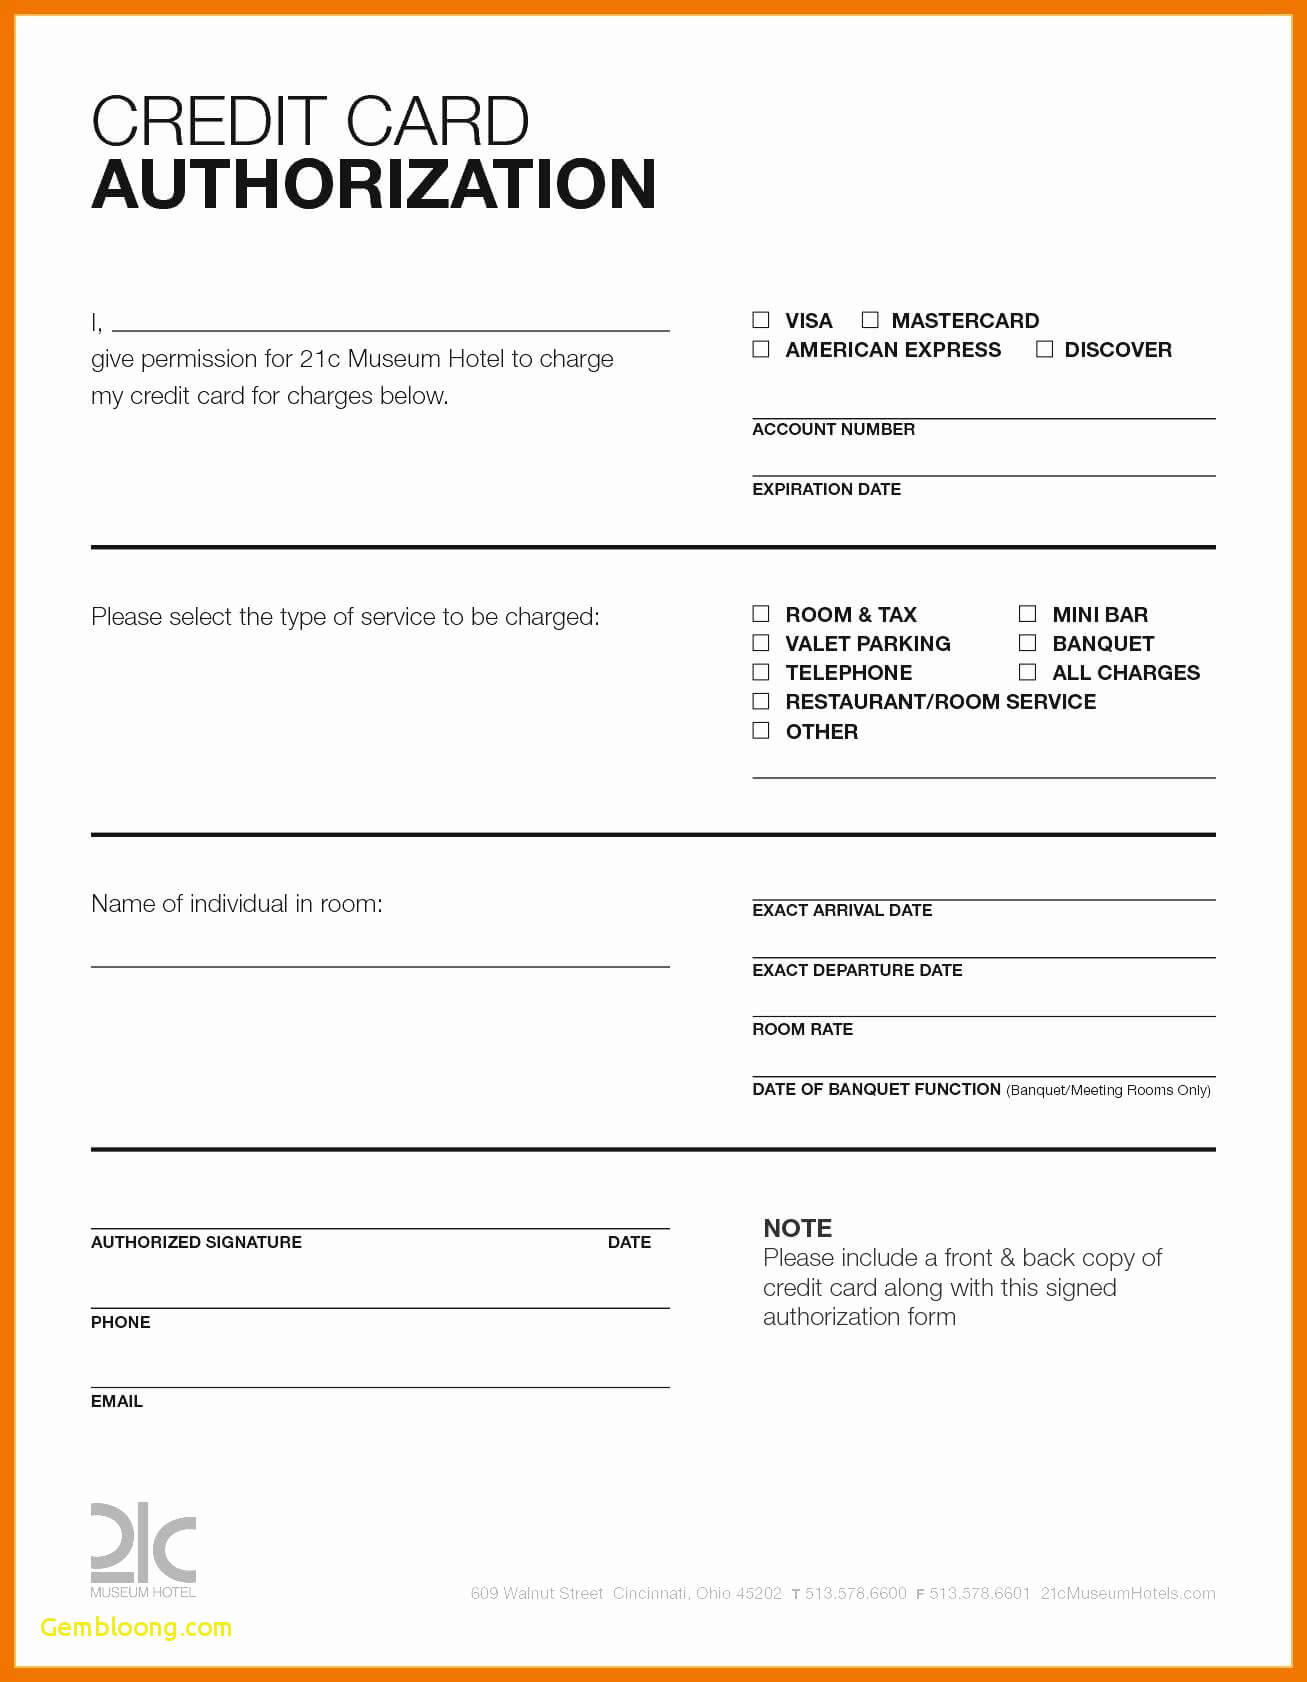 Hotel Credit Card Authorization Form Template Elegant with Credit Card Authorization Form Template Word